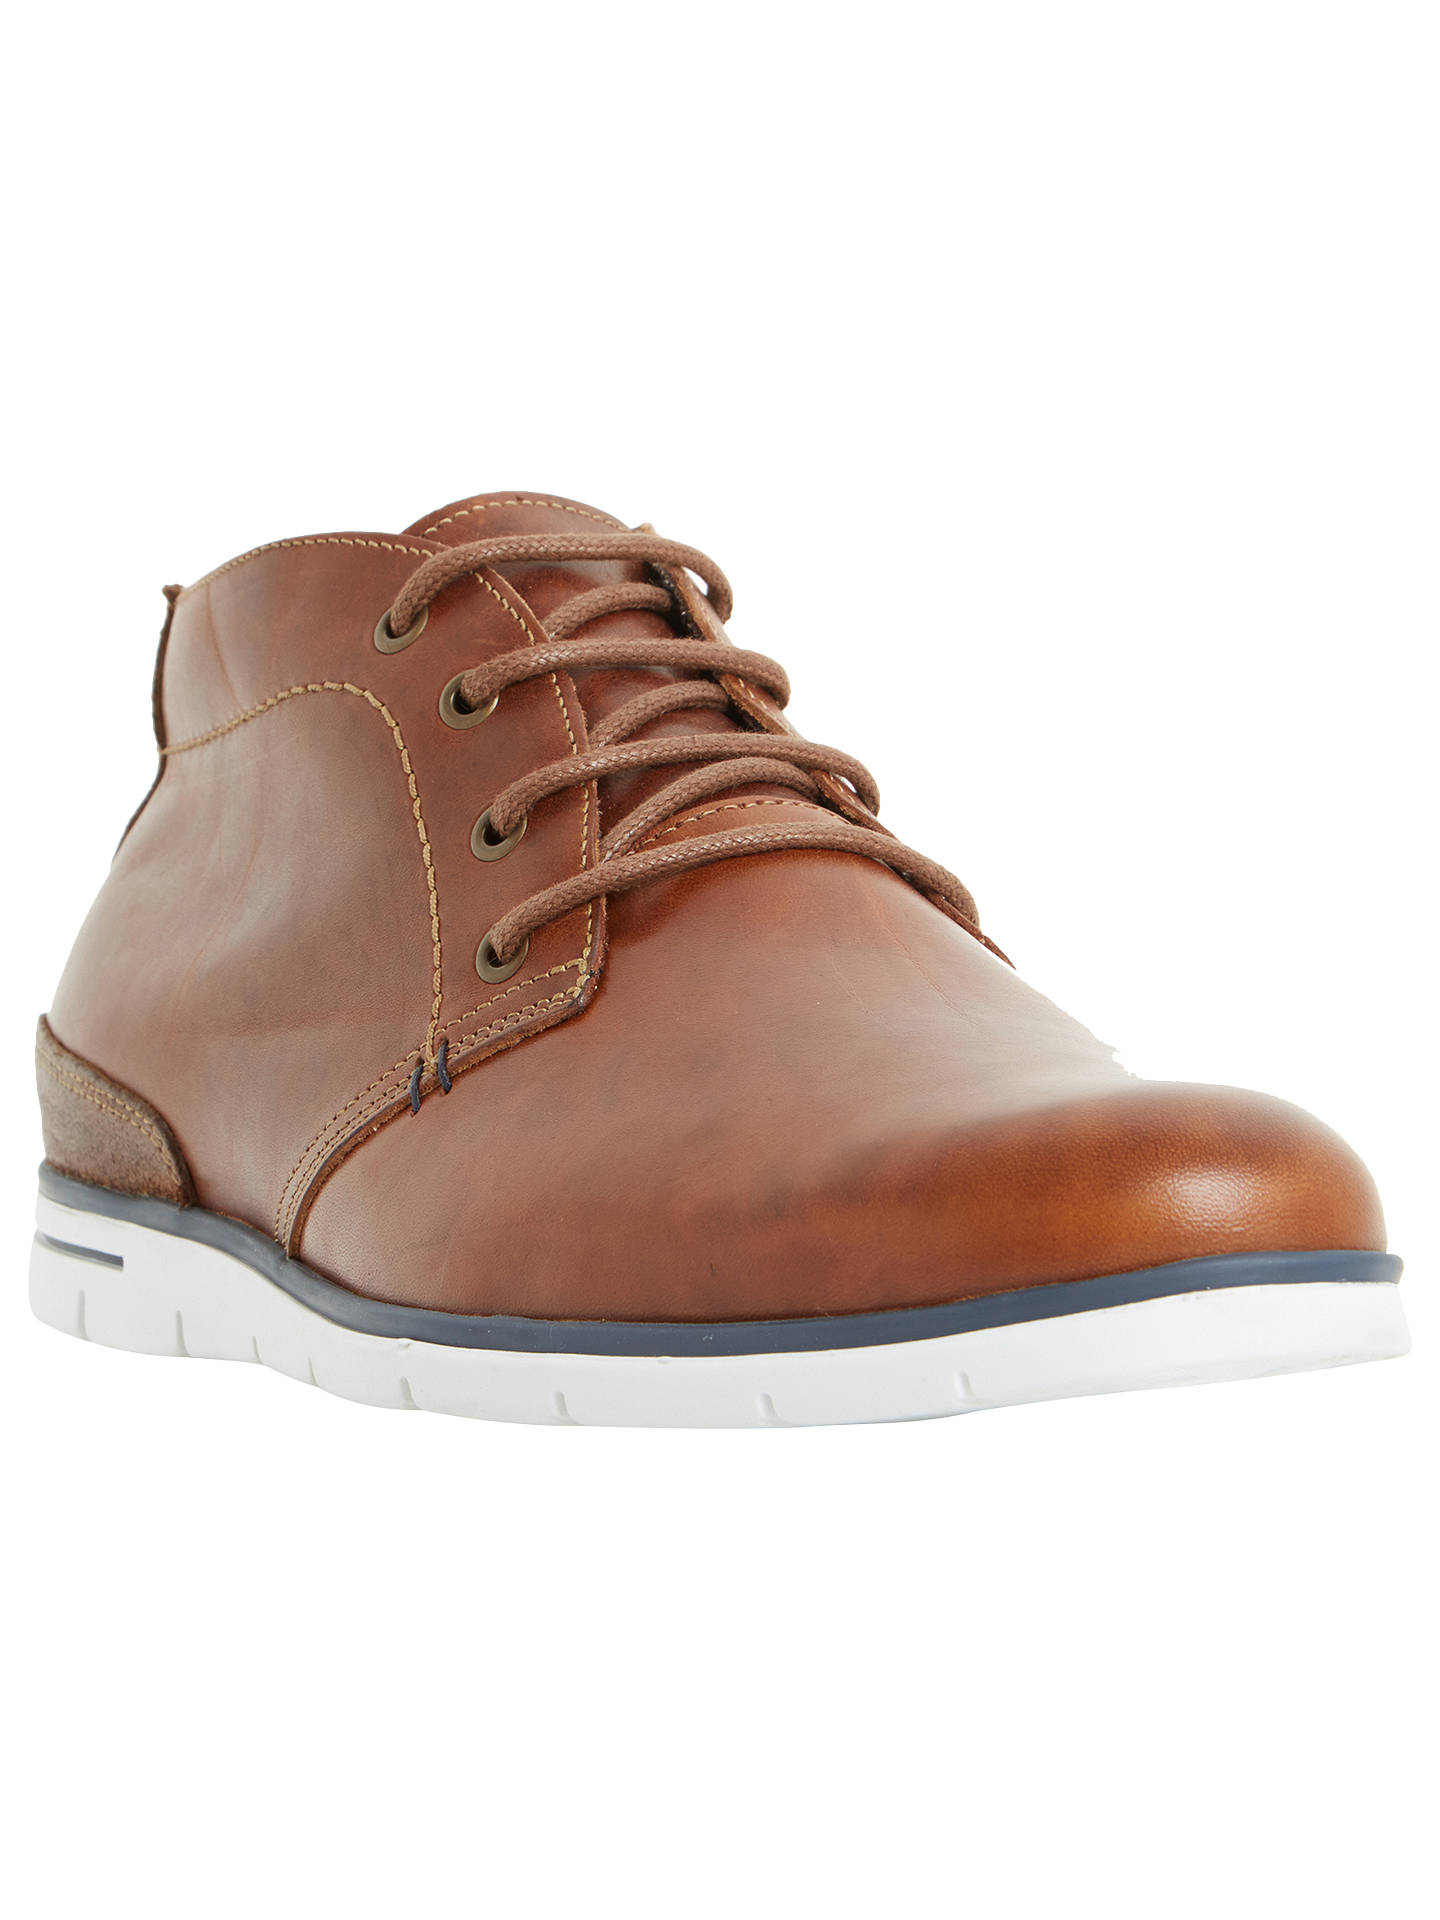 BuyDune Cookee Lace-Up Leather Shoes, Tan, 7 Online at johnlewis.com